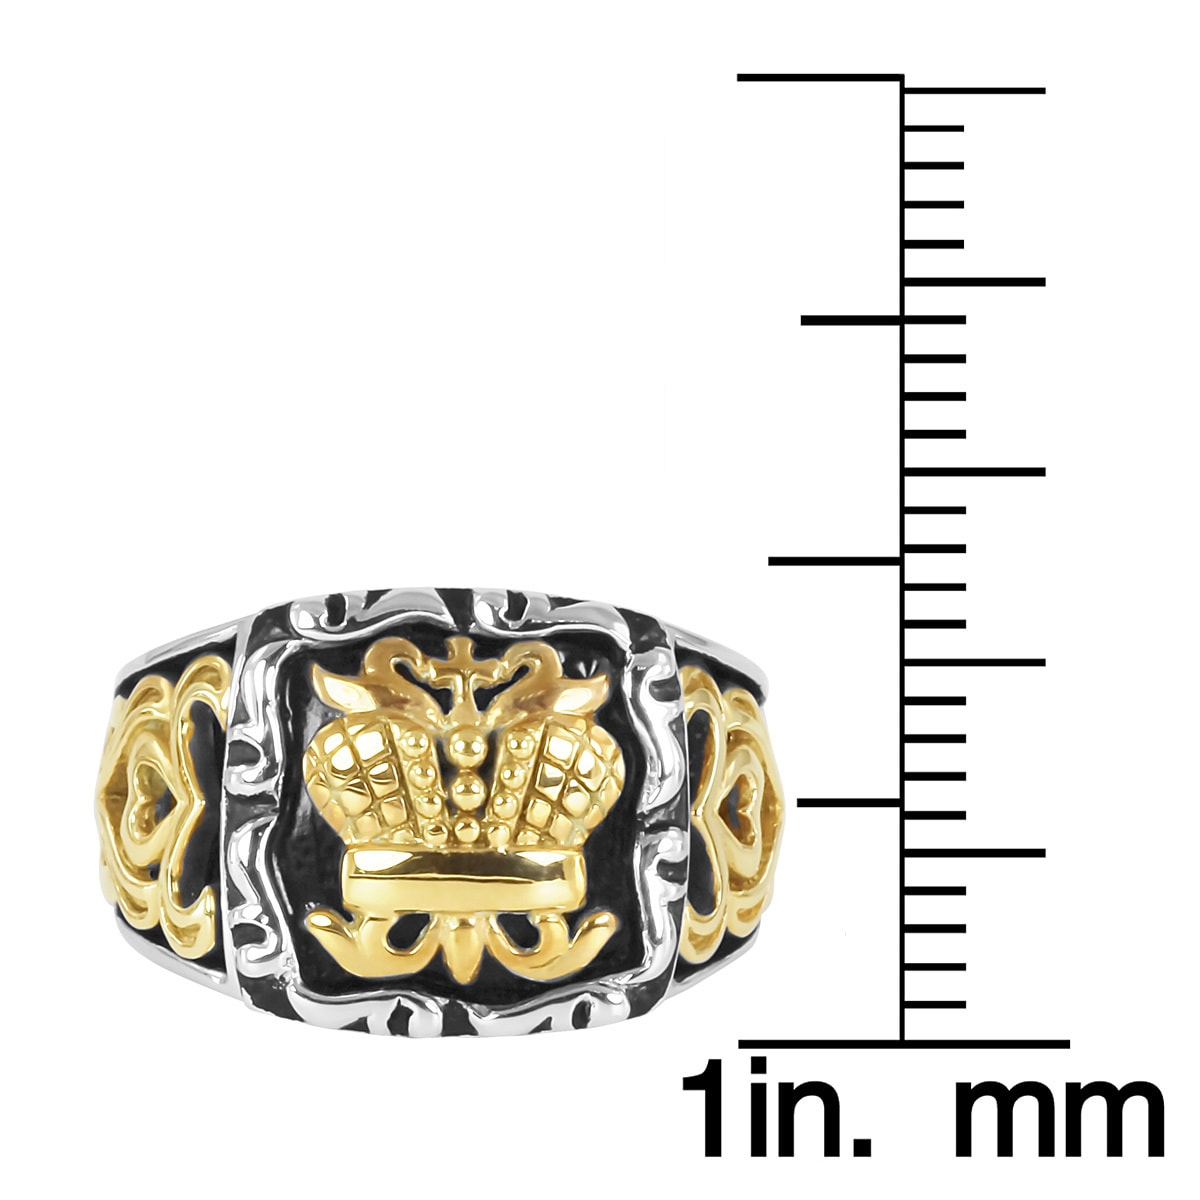 Contessa 18k Yellow Gold and Sterling Silver Lady's British Crown Ring